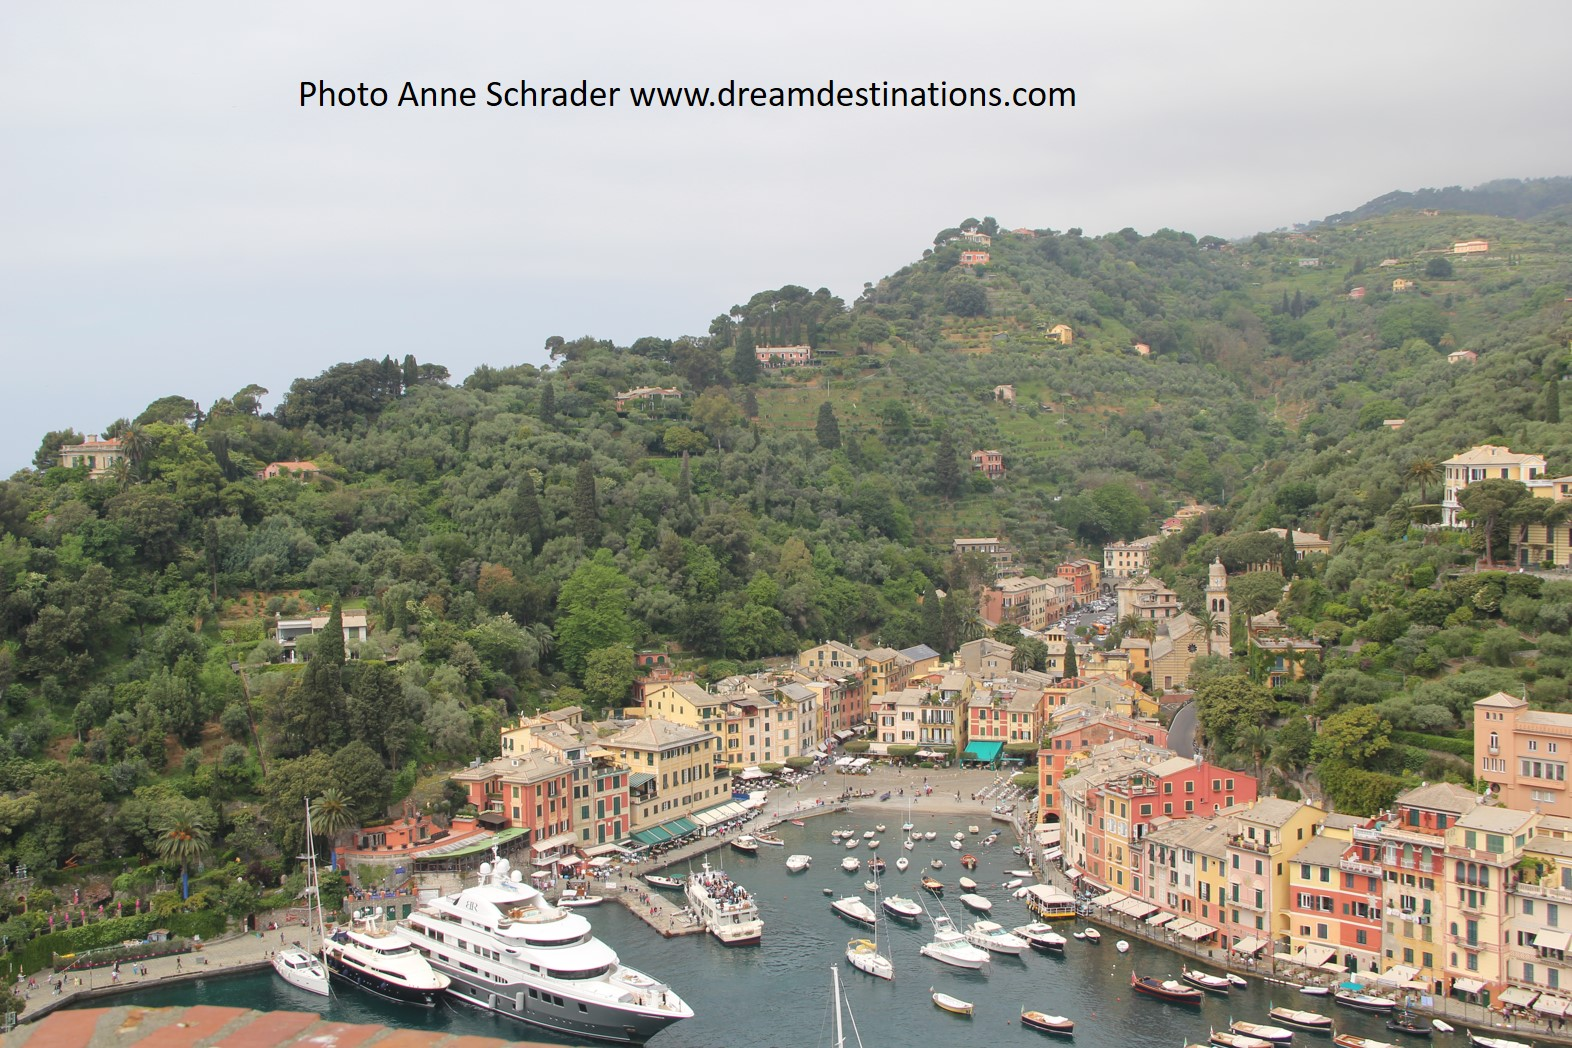 Color pops against the green trees in Portofino